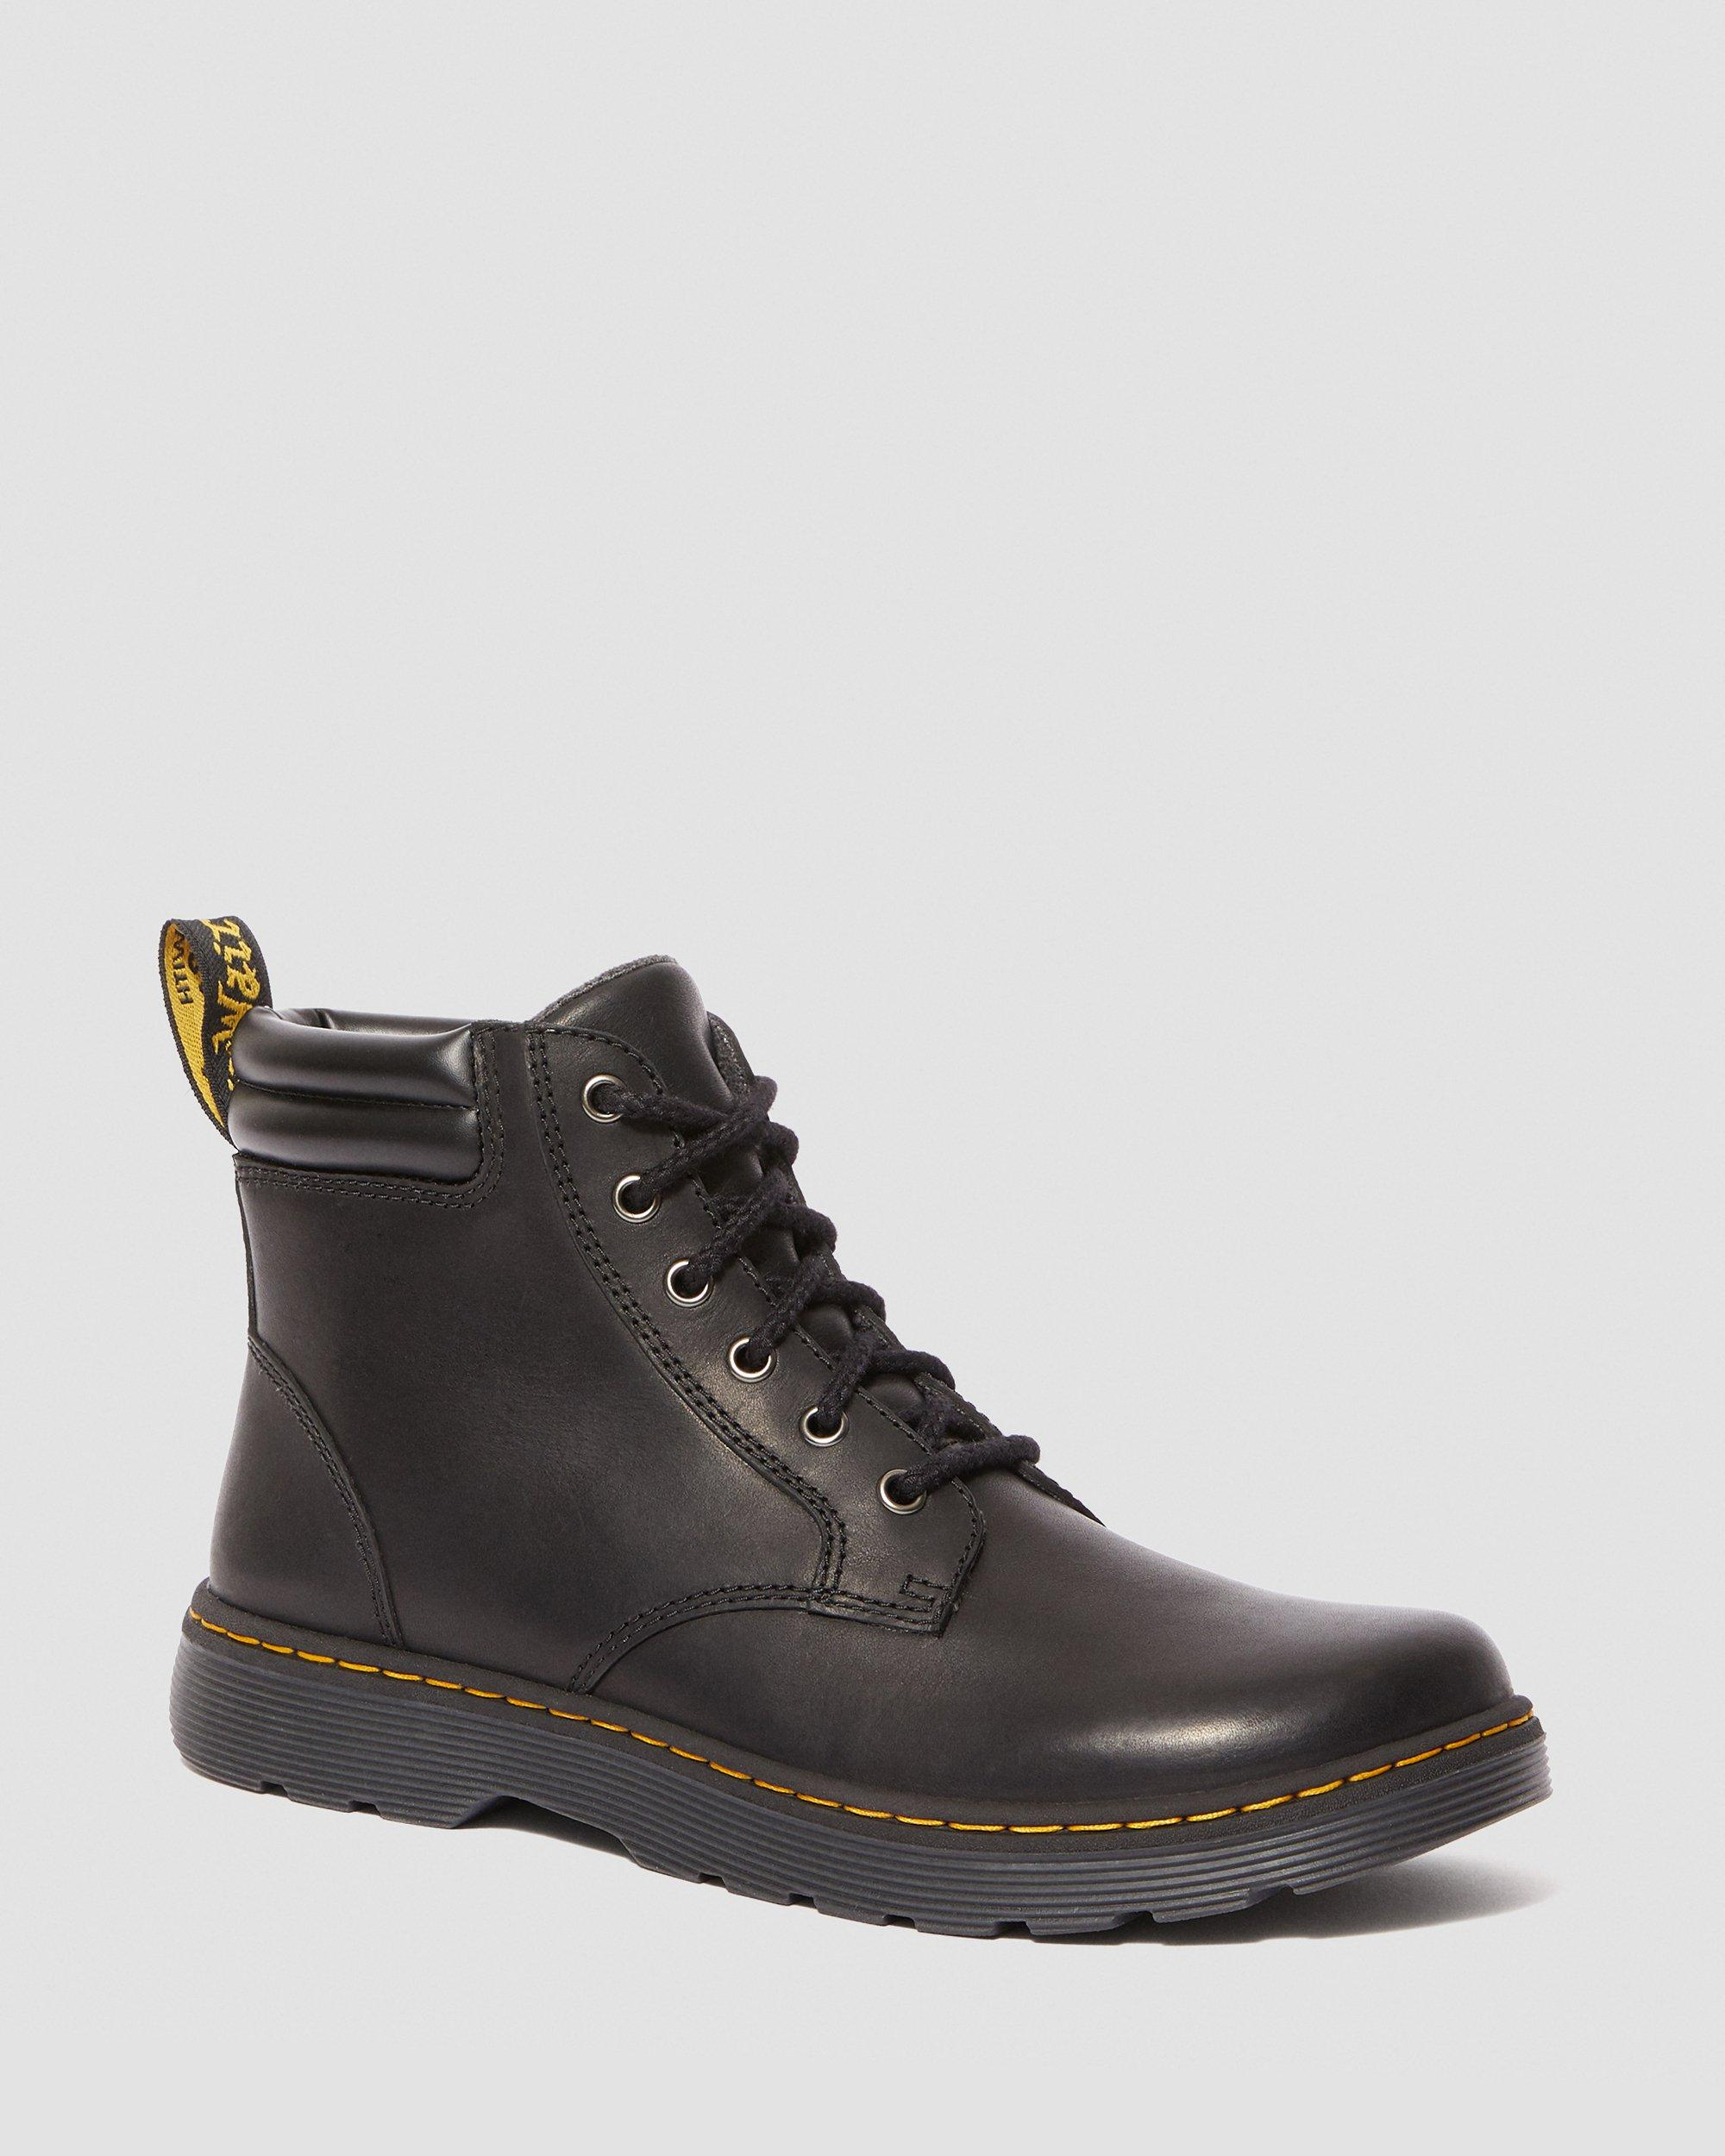 TIPTON LEATHER LACE UP ANKLE BOOTS | Stiefel | Leder Stiefel